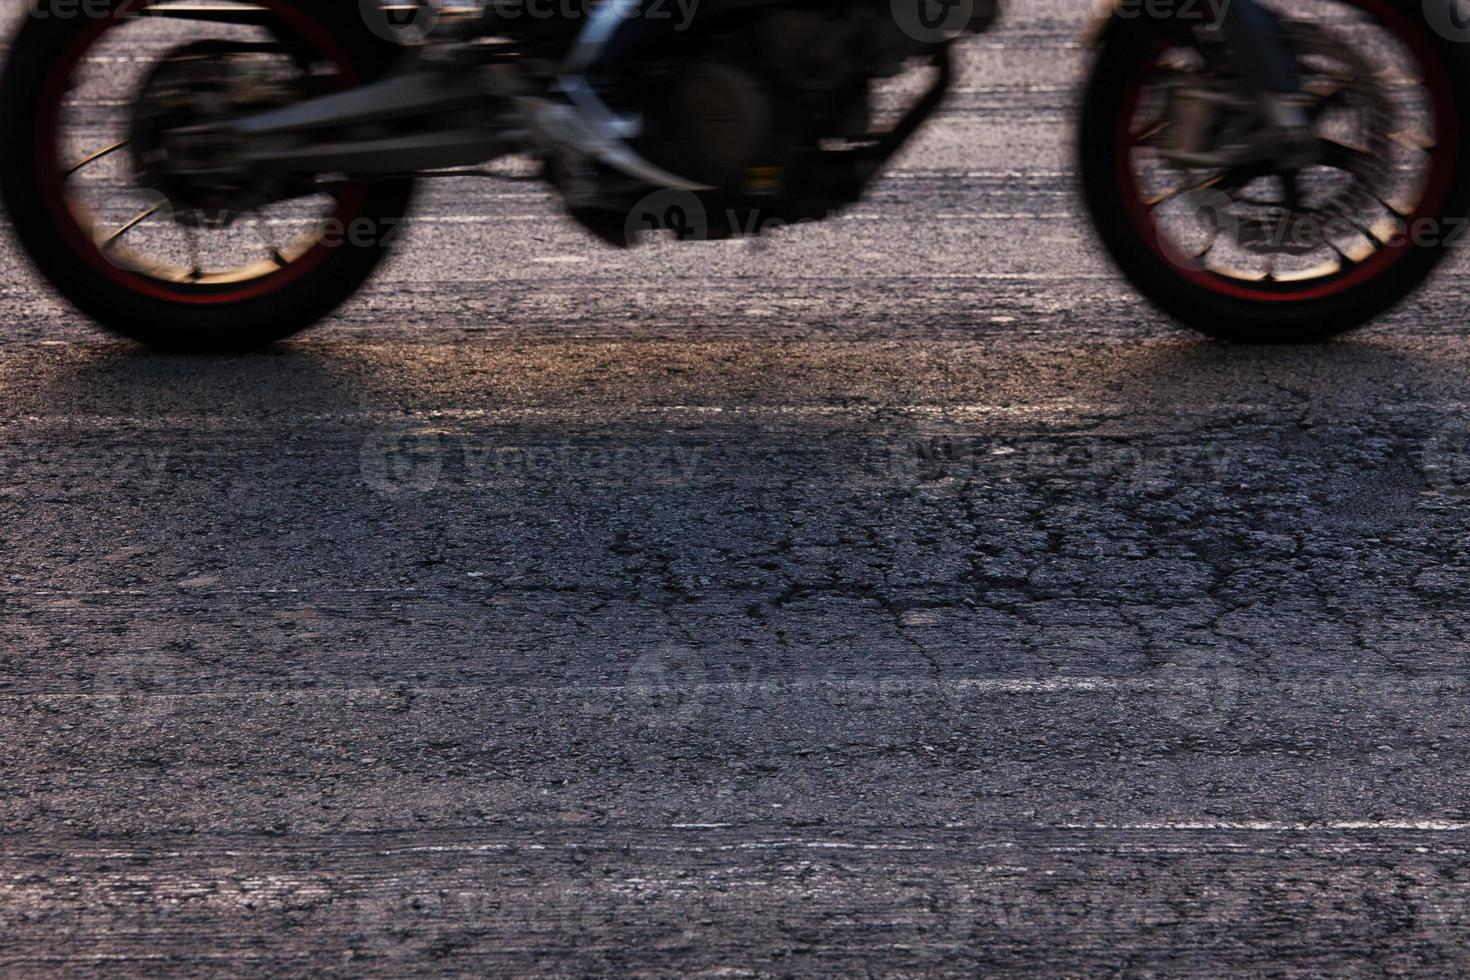 Rapidly riding a motorcycle on the road photo